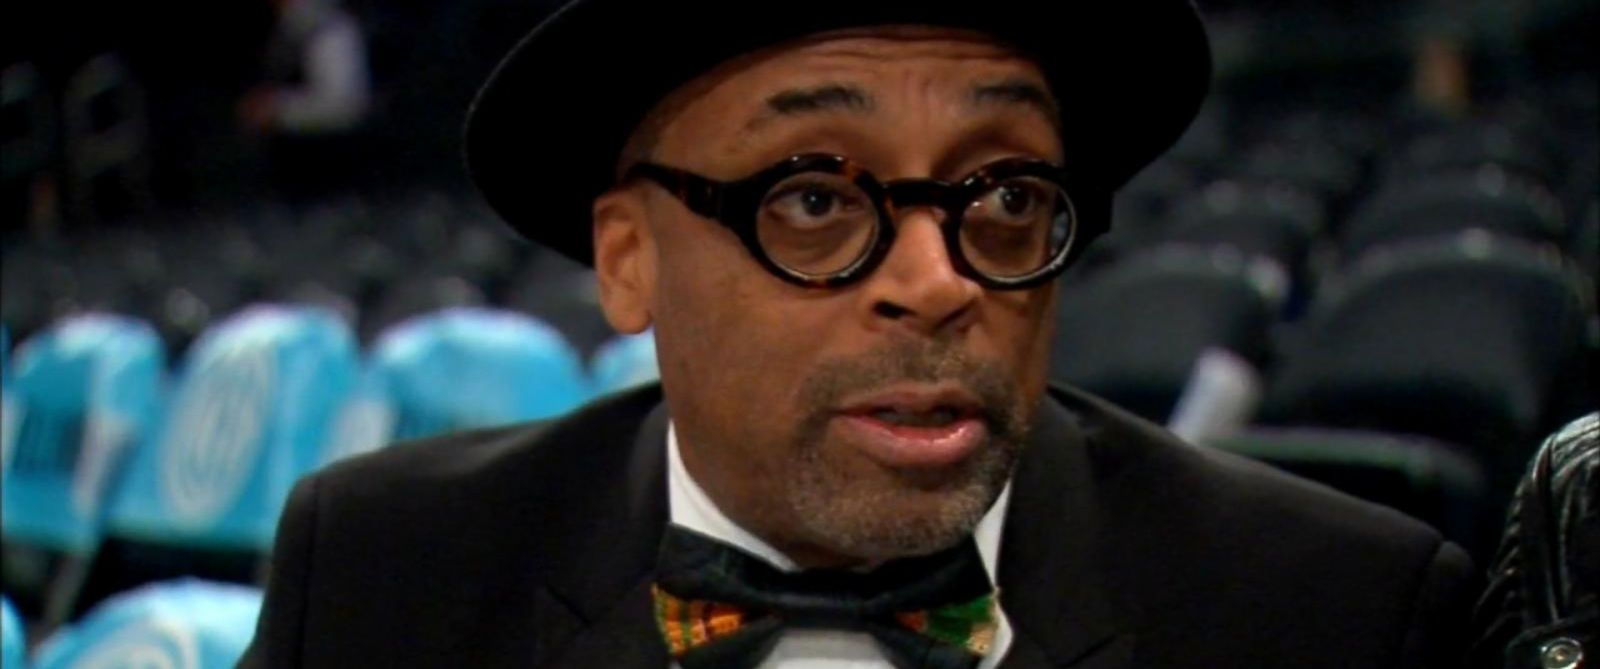 PHOTO: Spike Lee attended an NBA game at Madison Garden in New York City instead of going to the Academy Awards in Hollywood, Feb. 28, 2016.